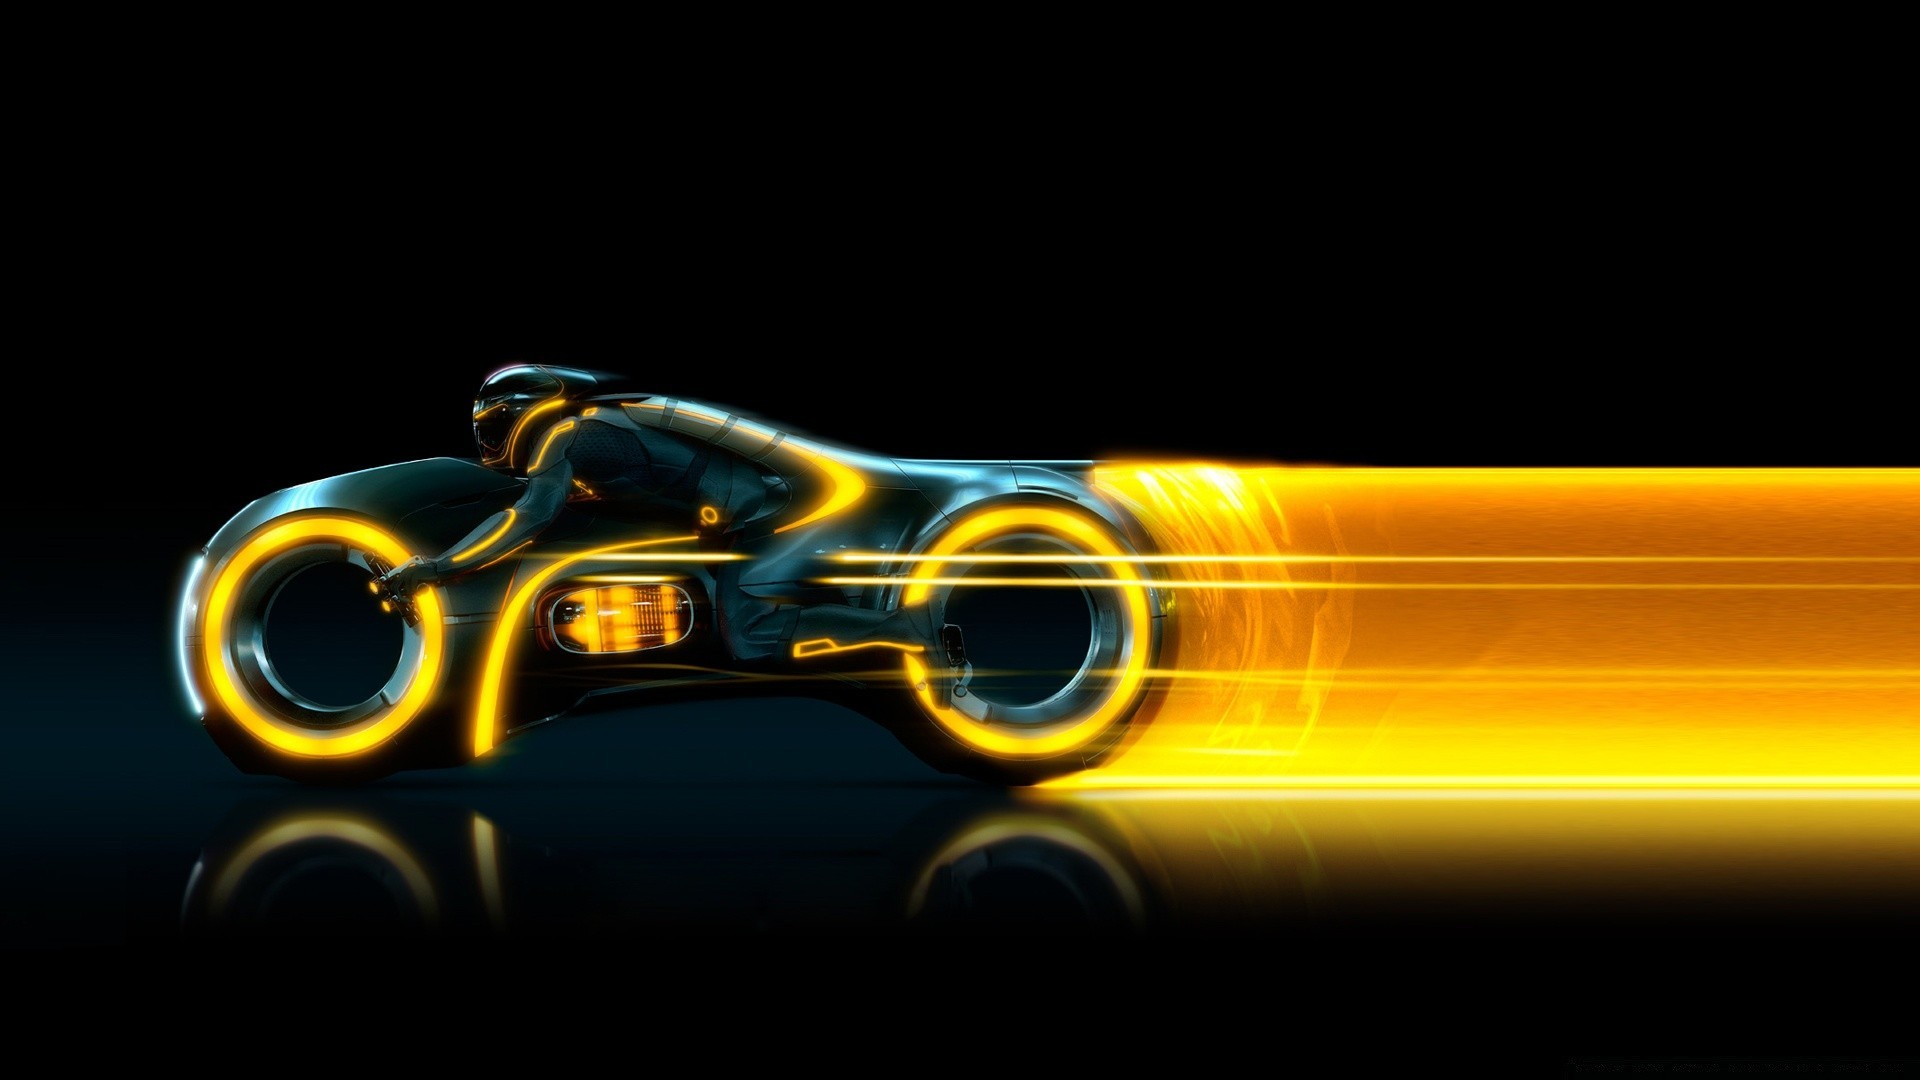 Tron Legacy IPhone Wallpapers For Free